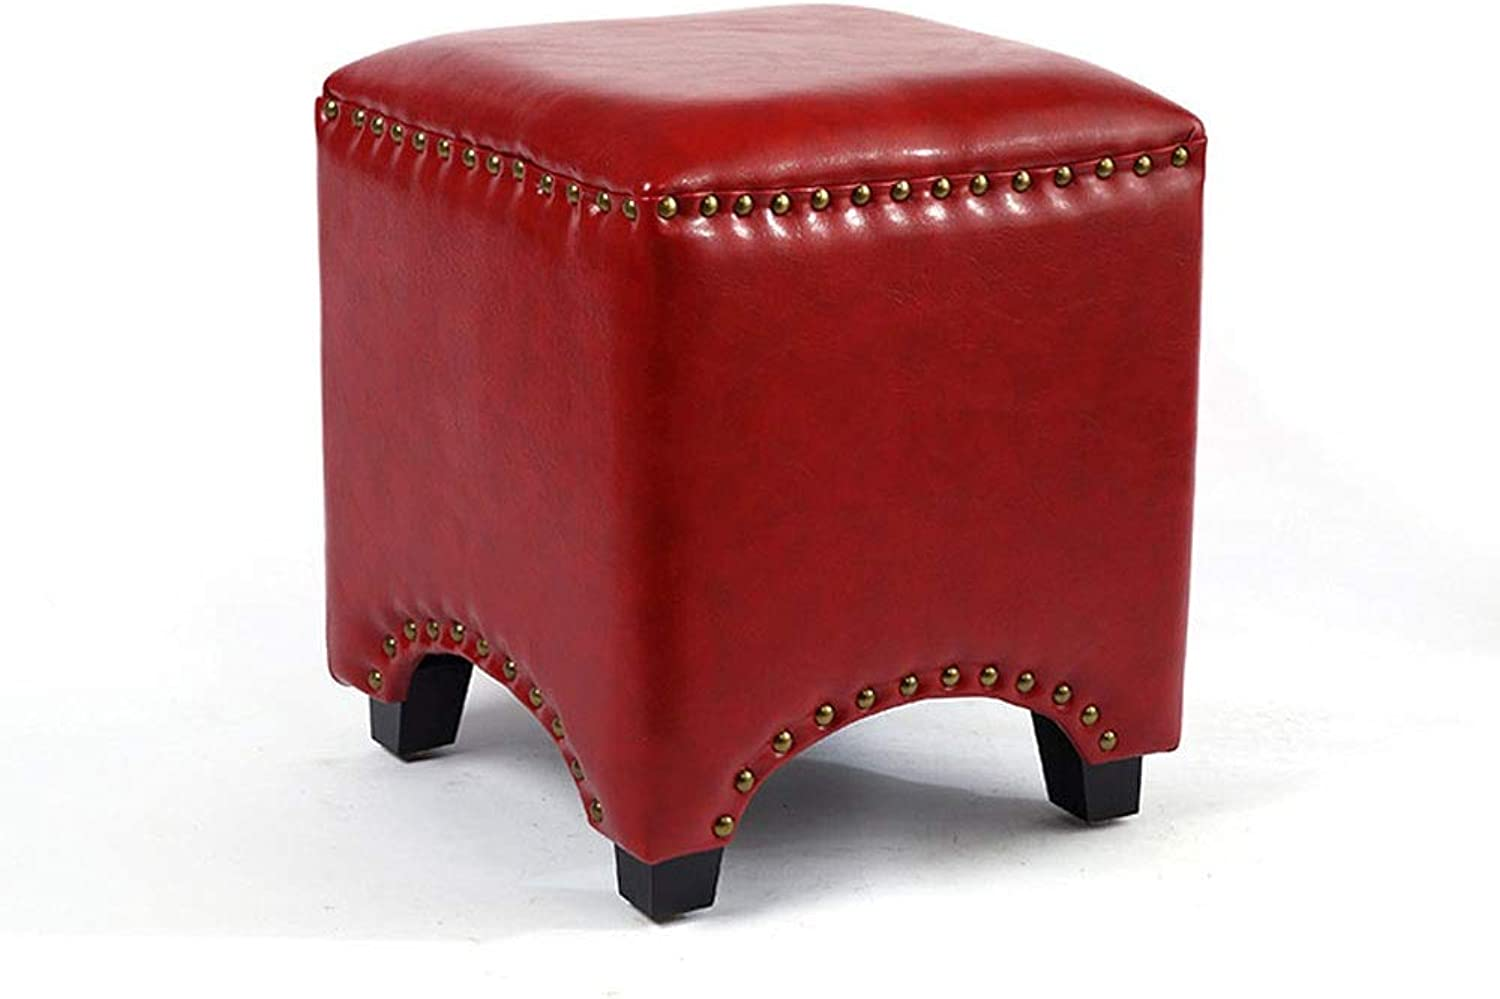 European Leather Stool Fashion Creative Fitting Room Sofa Bench wear shoes Stool Living Room Home Leather pier Solid Wood Square pier (color   Red)